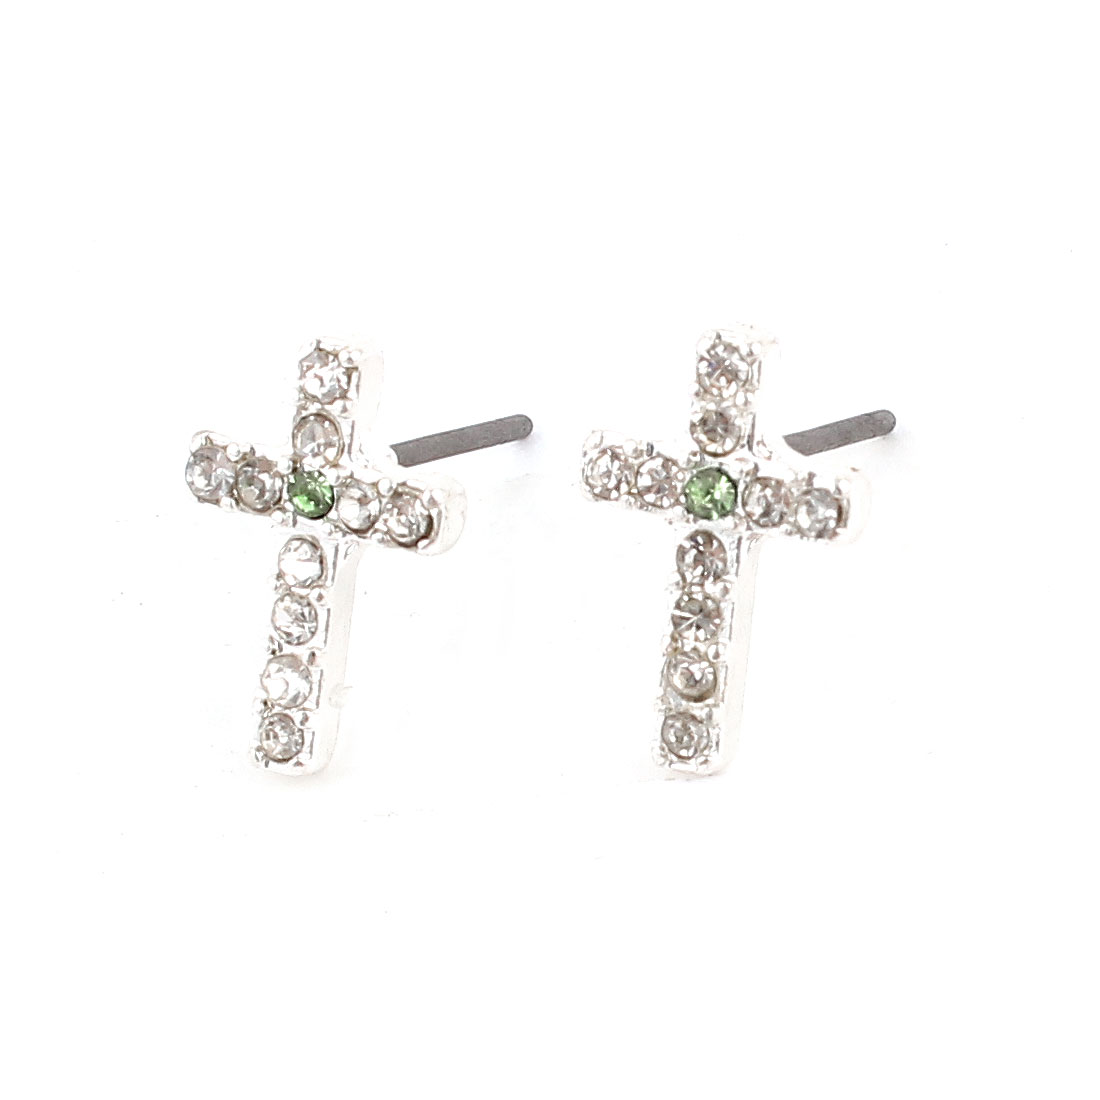 Lady Rhinestone Inlaid Green Cross Ear Pins Earbob Stud Earrings Pair